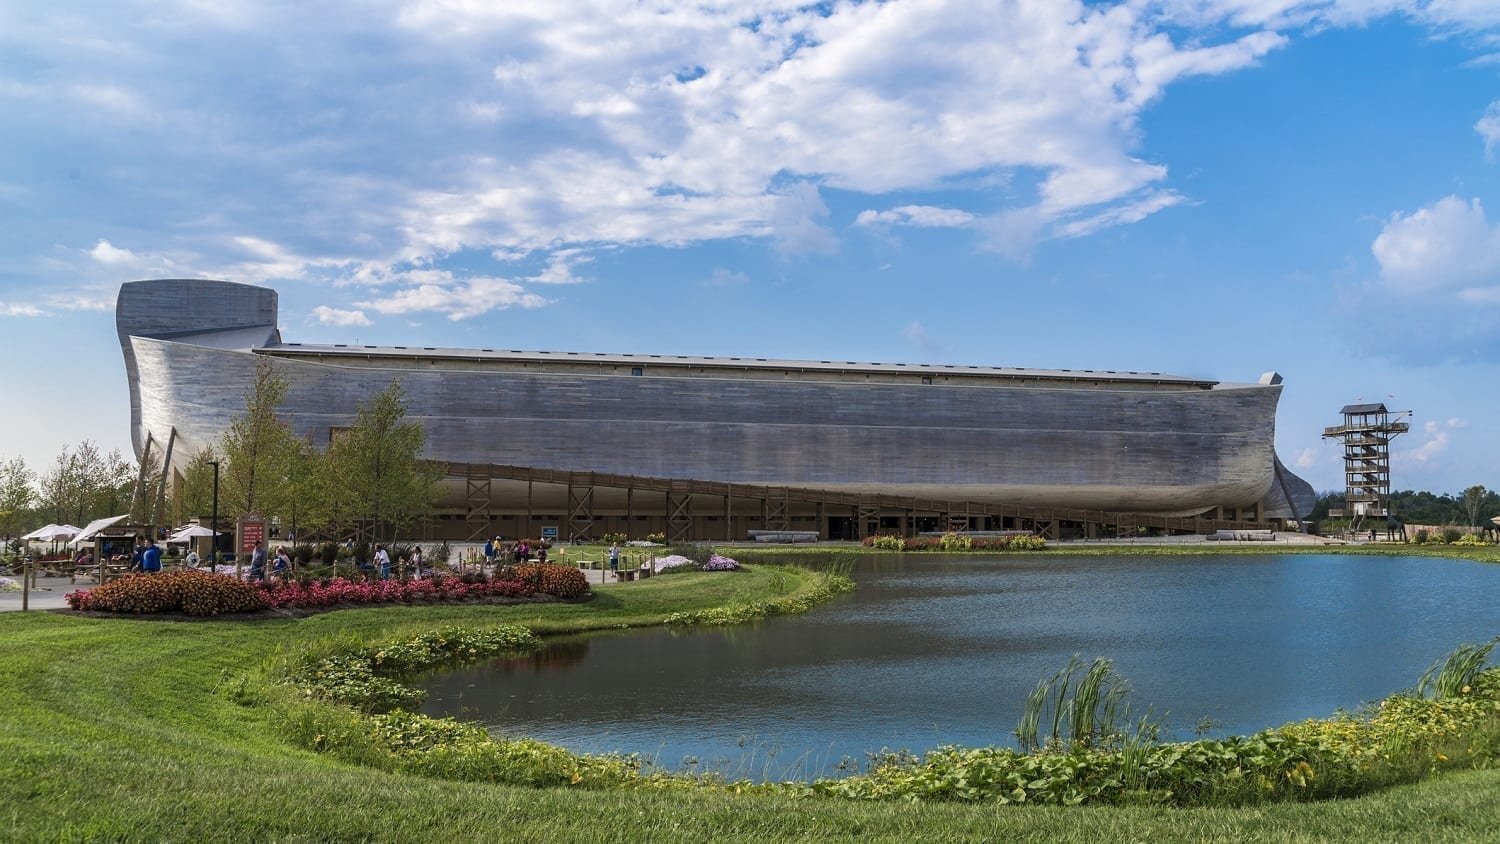 Ark Encounter with gardens and lake: Photo 98856178 © Helgidinson | Dreamstime.com